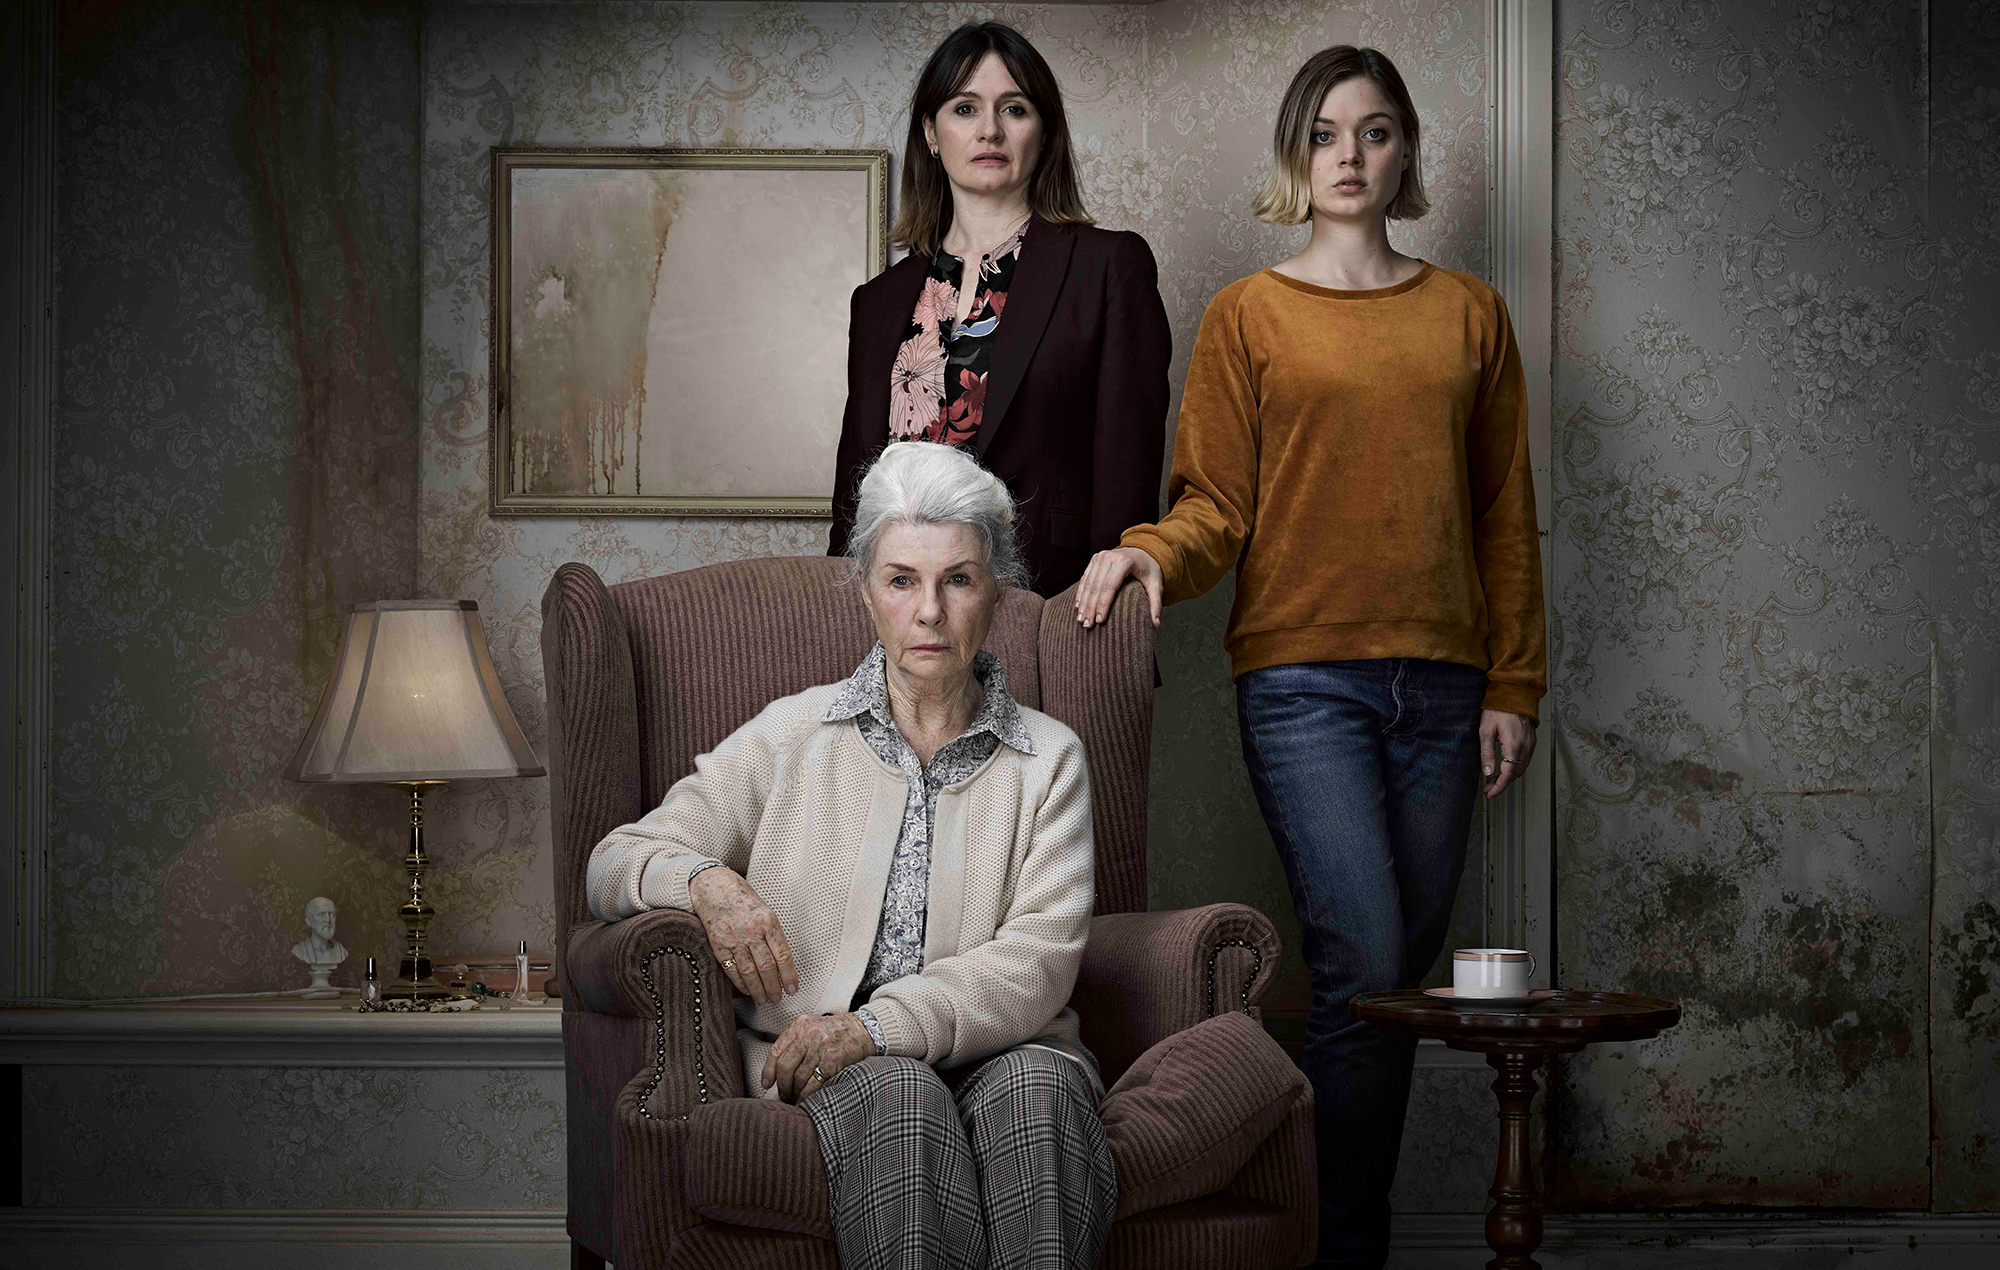 'Relic' review: granny goes missing in dread-filled dementia horror